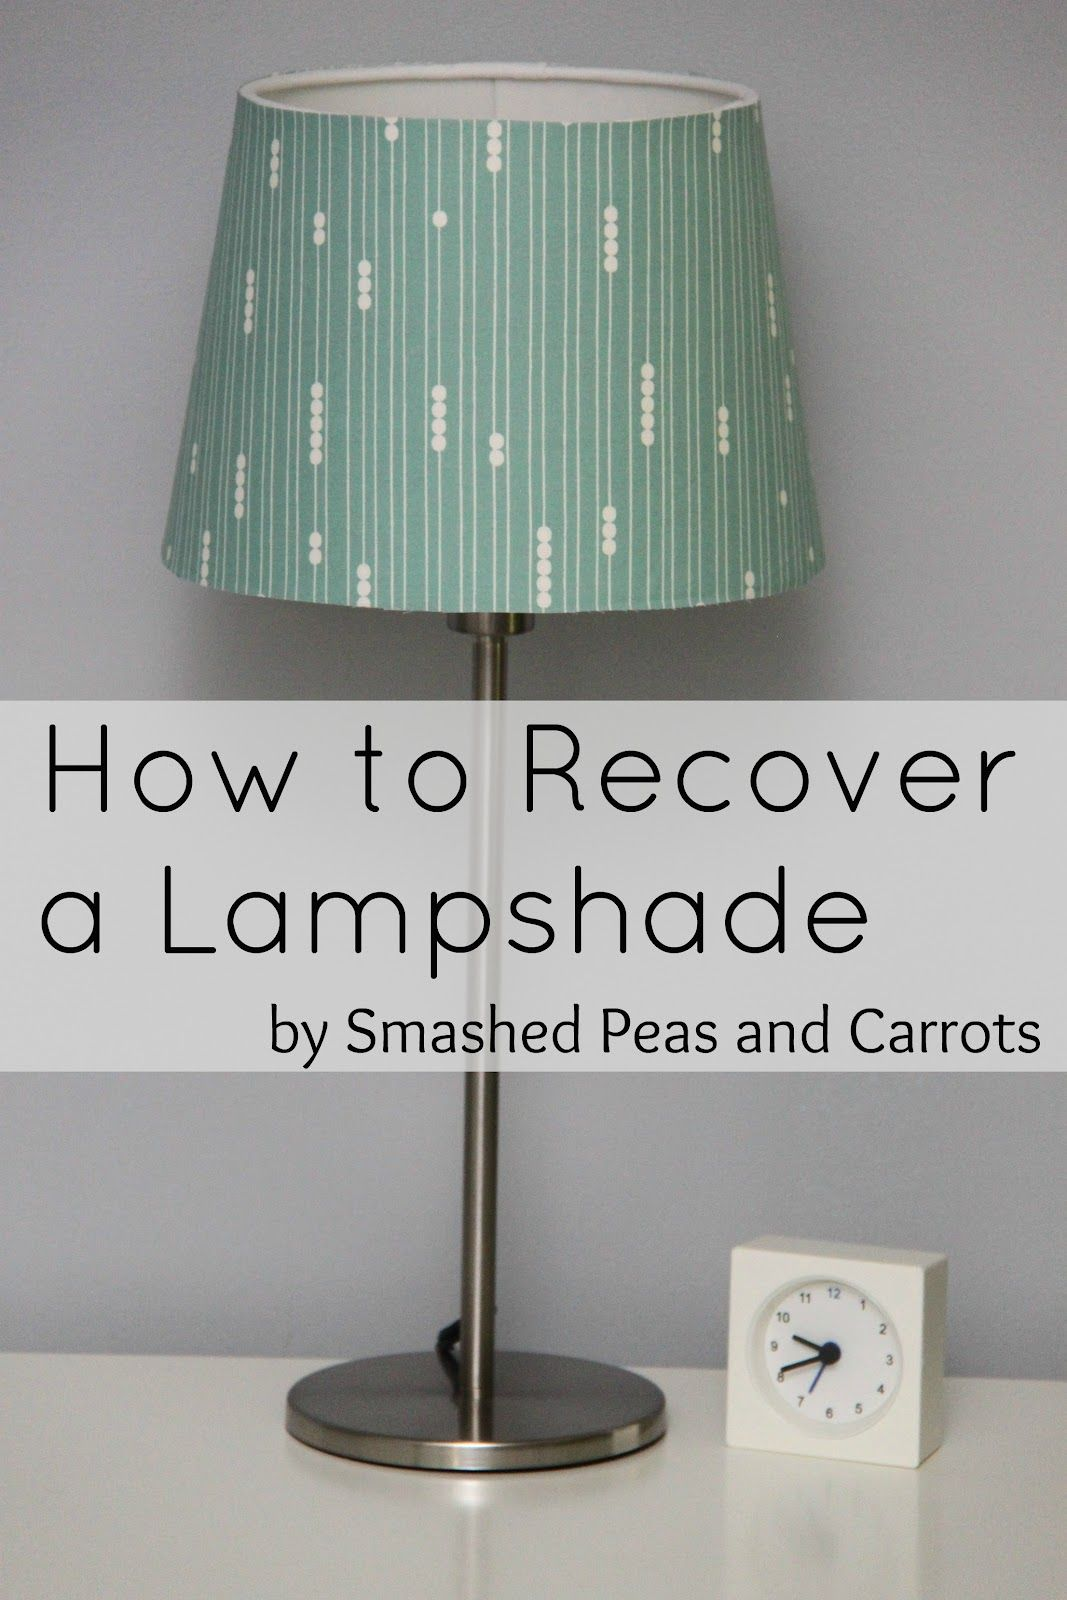 How to Recover Lampshades pictures